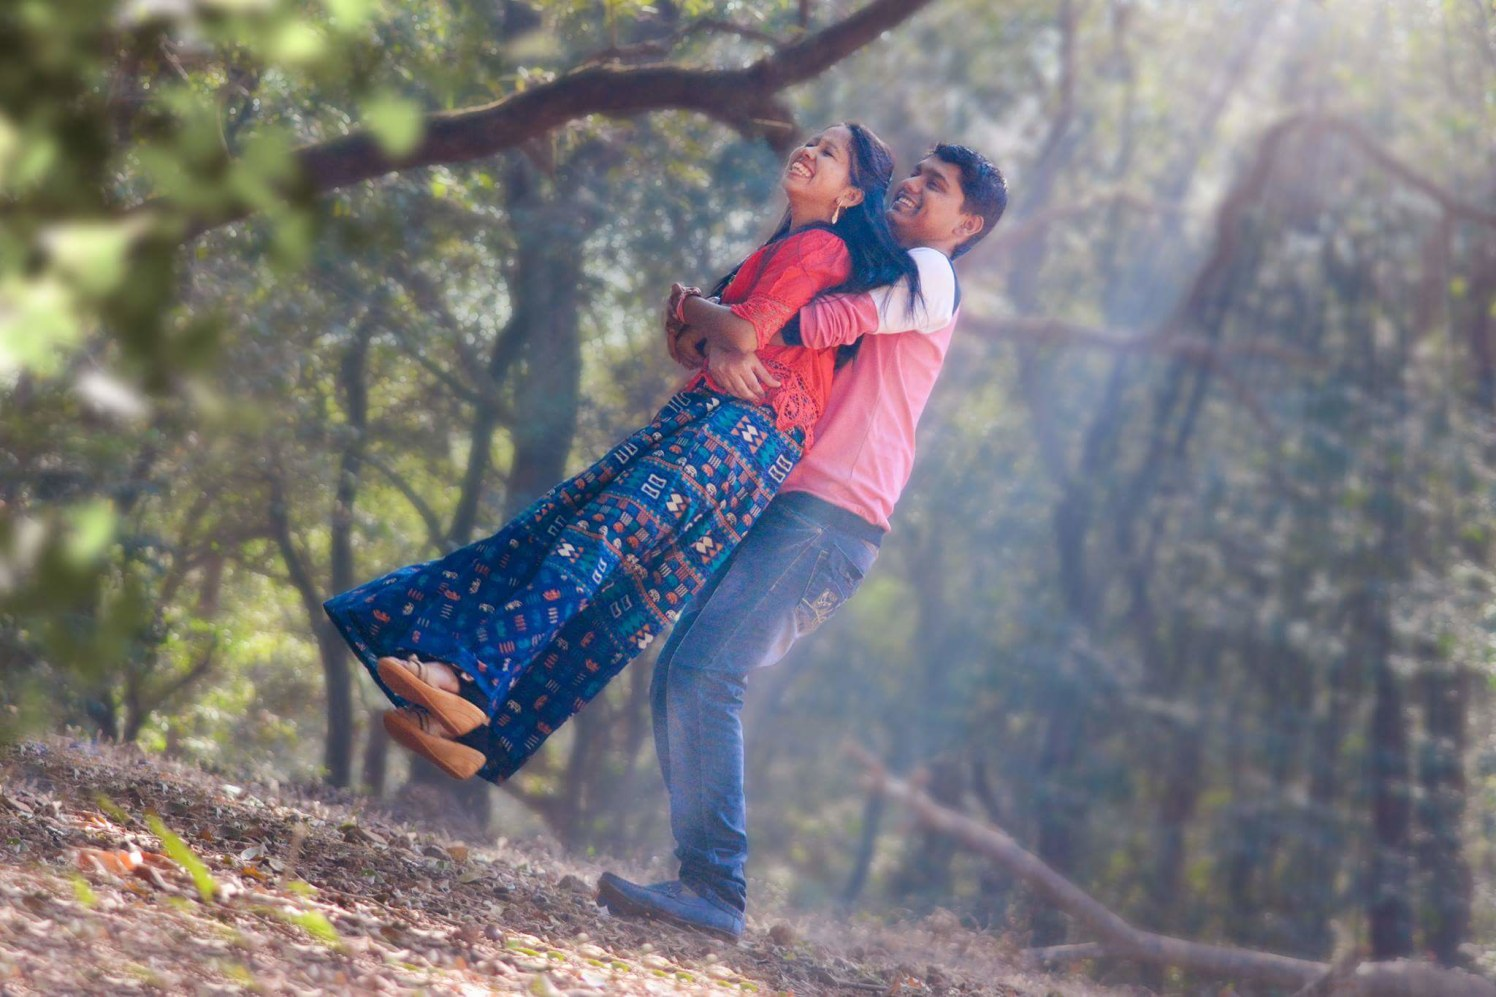 Smiling away with their love by Proffesional Photographer Wedding-photography | Weddings Photos & Ideas